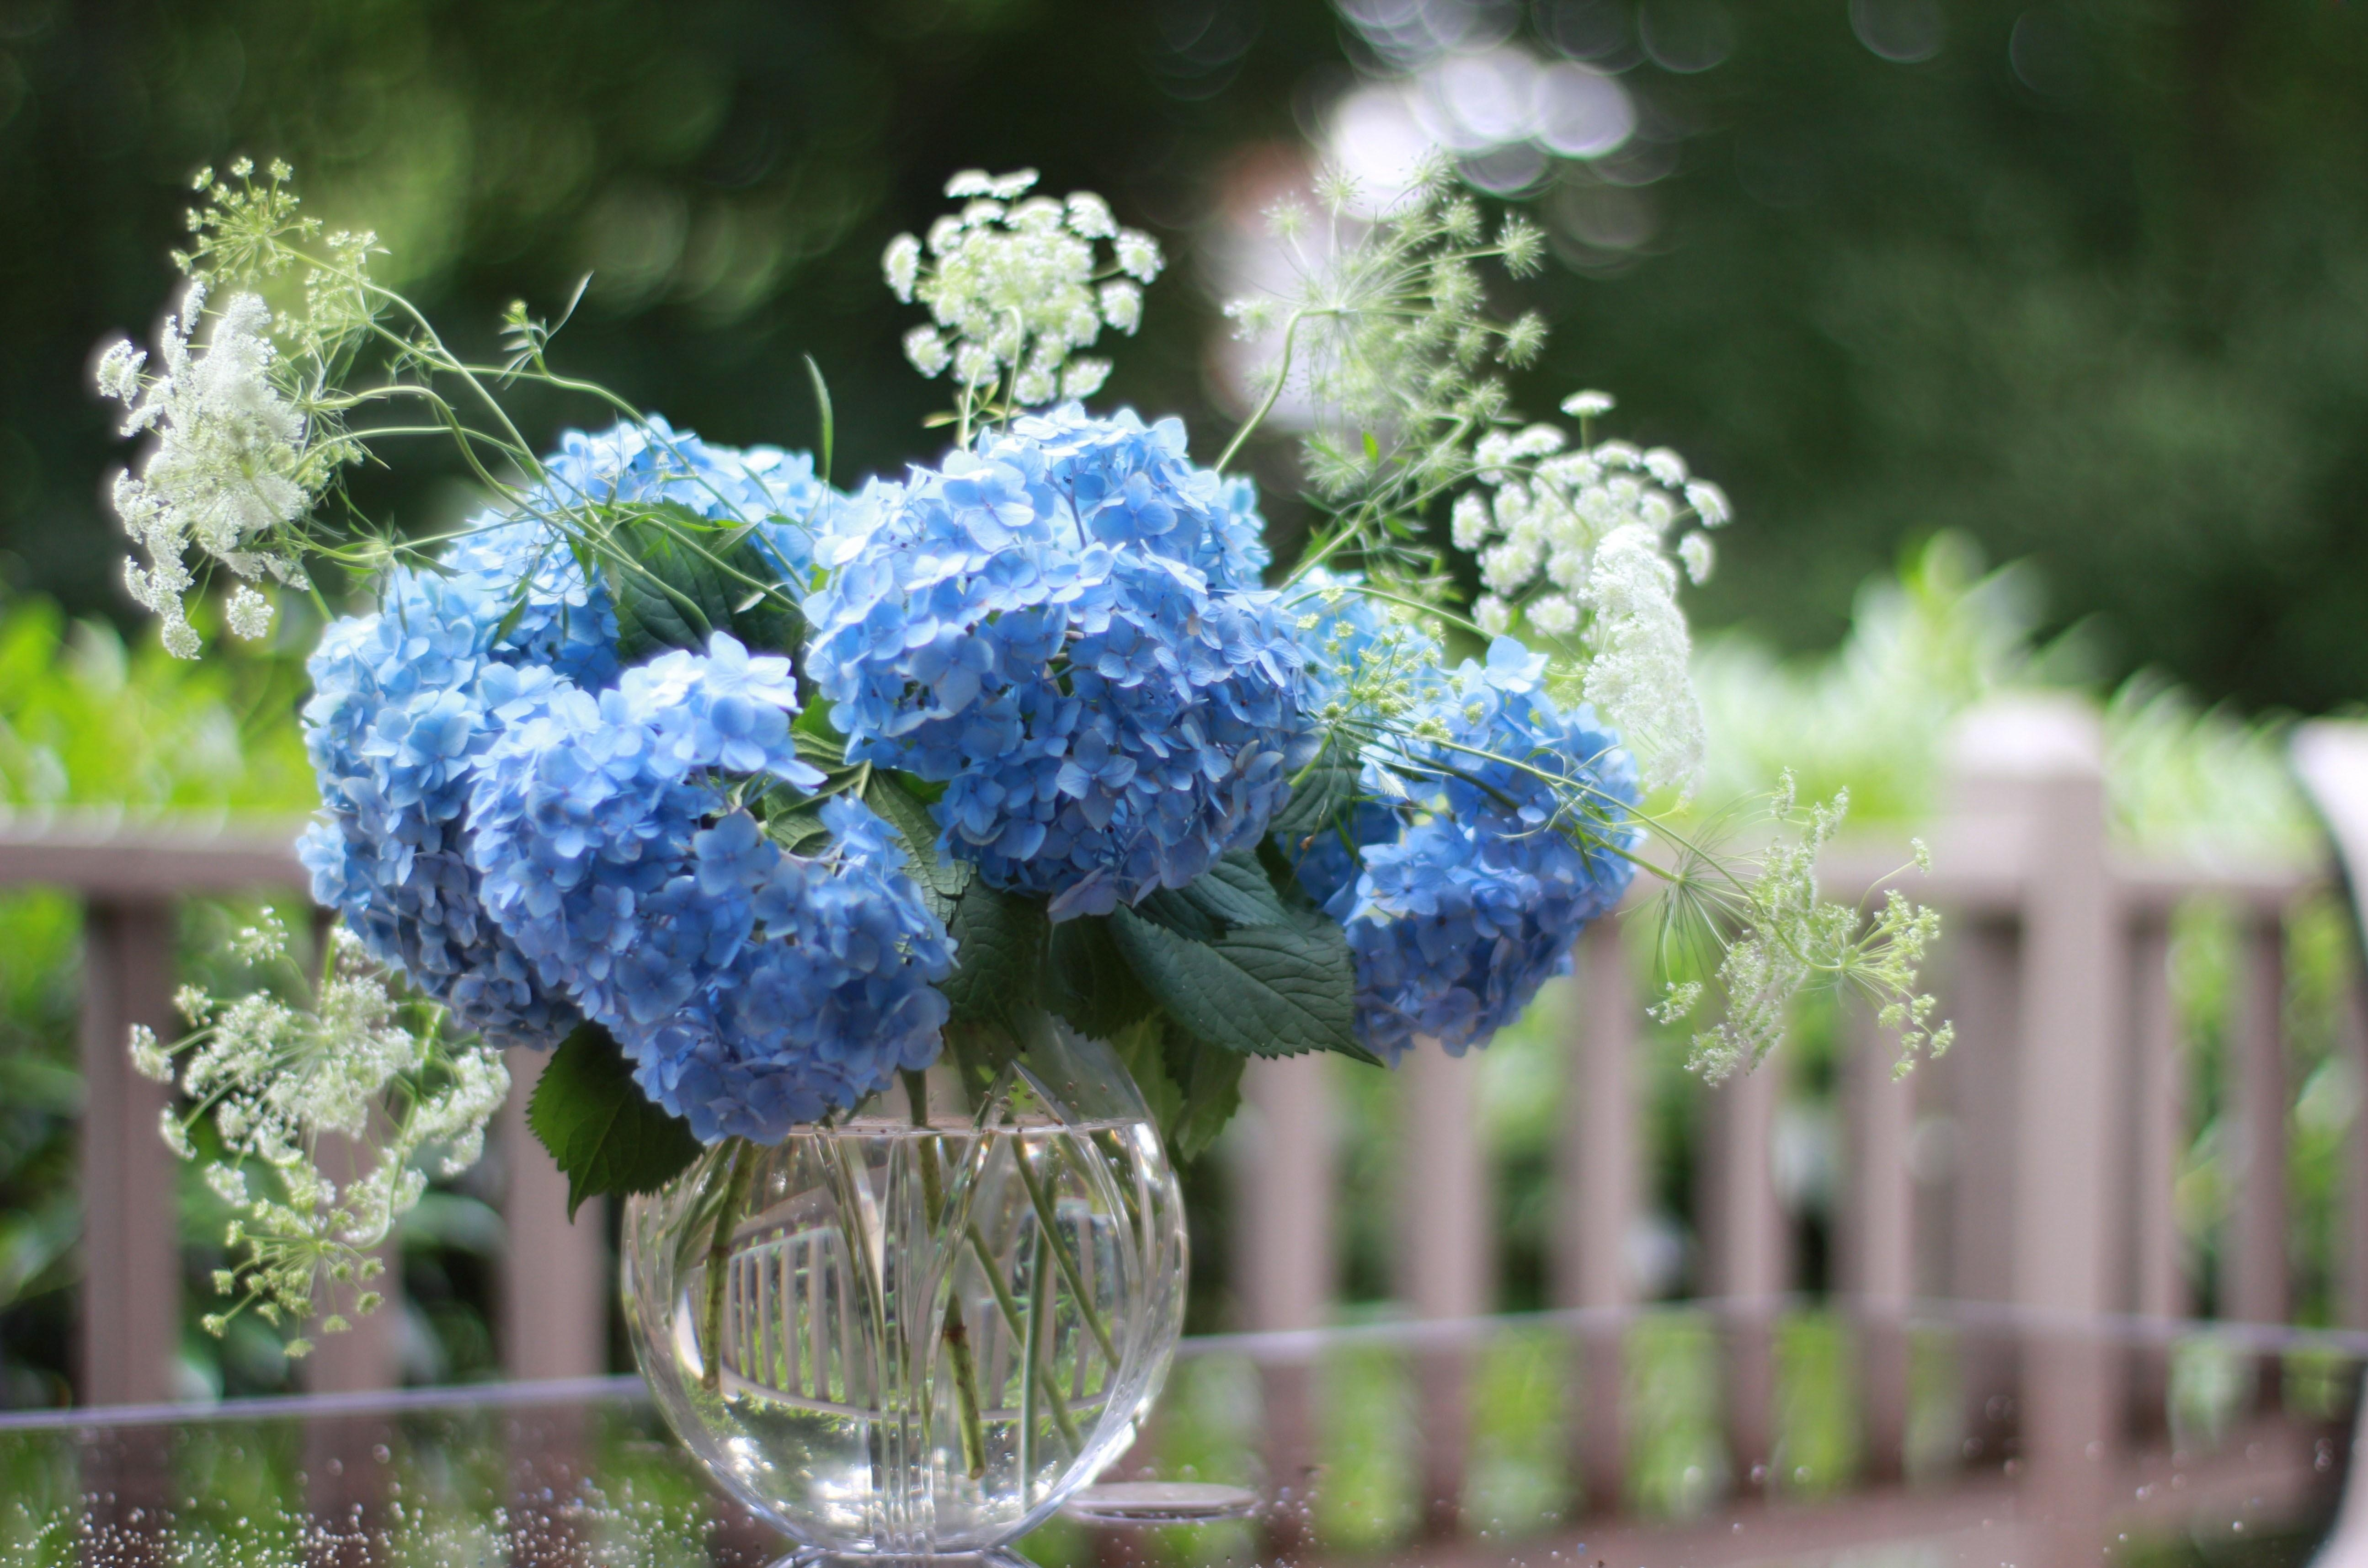 115711 download wallpaper Flowers, Bouquet, Vase, Hydrangea, Sharpness screensavers and pictures for free